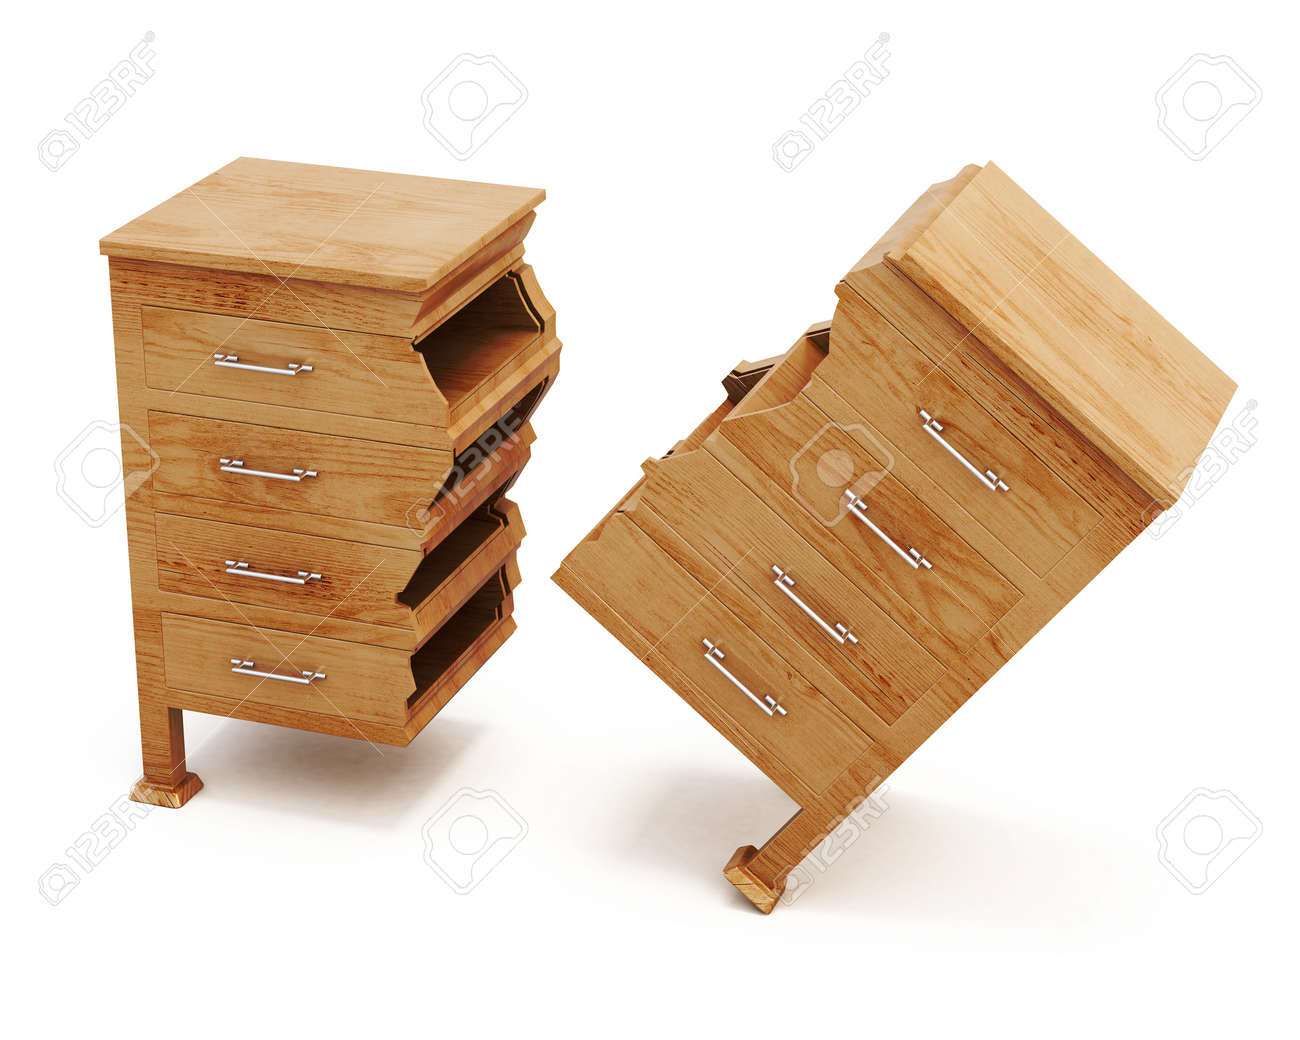 broken wooden dresser on white background conceptual image chest of drawers front view drawer front c74 front